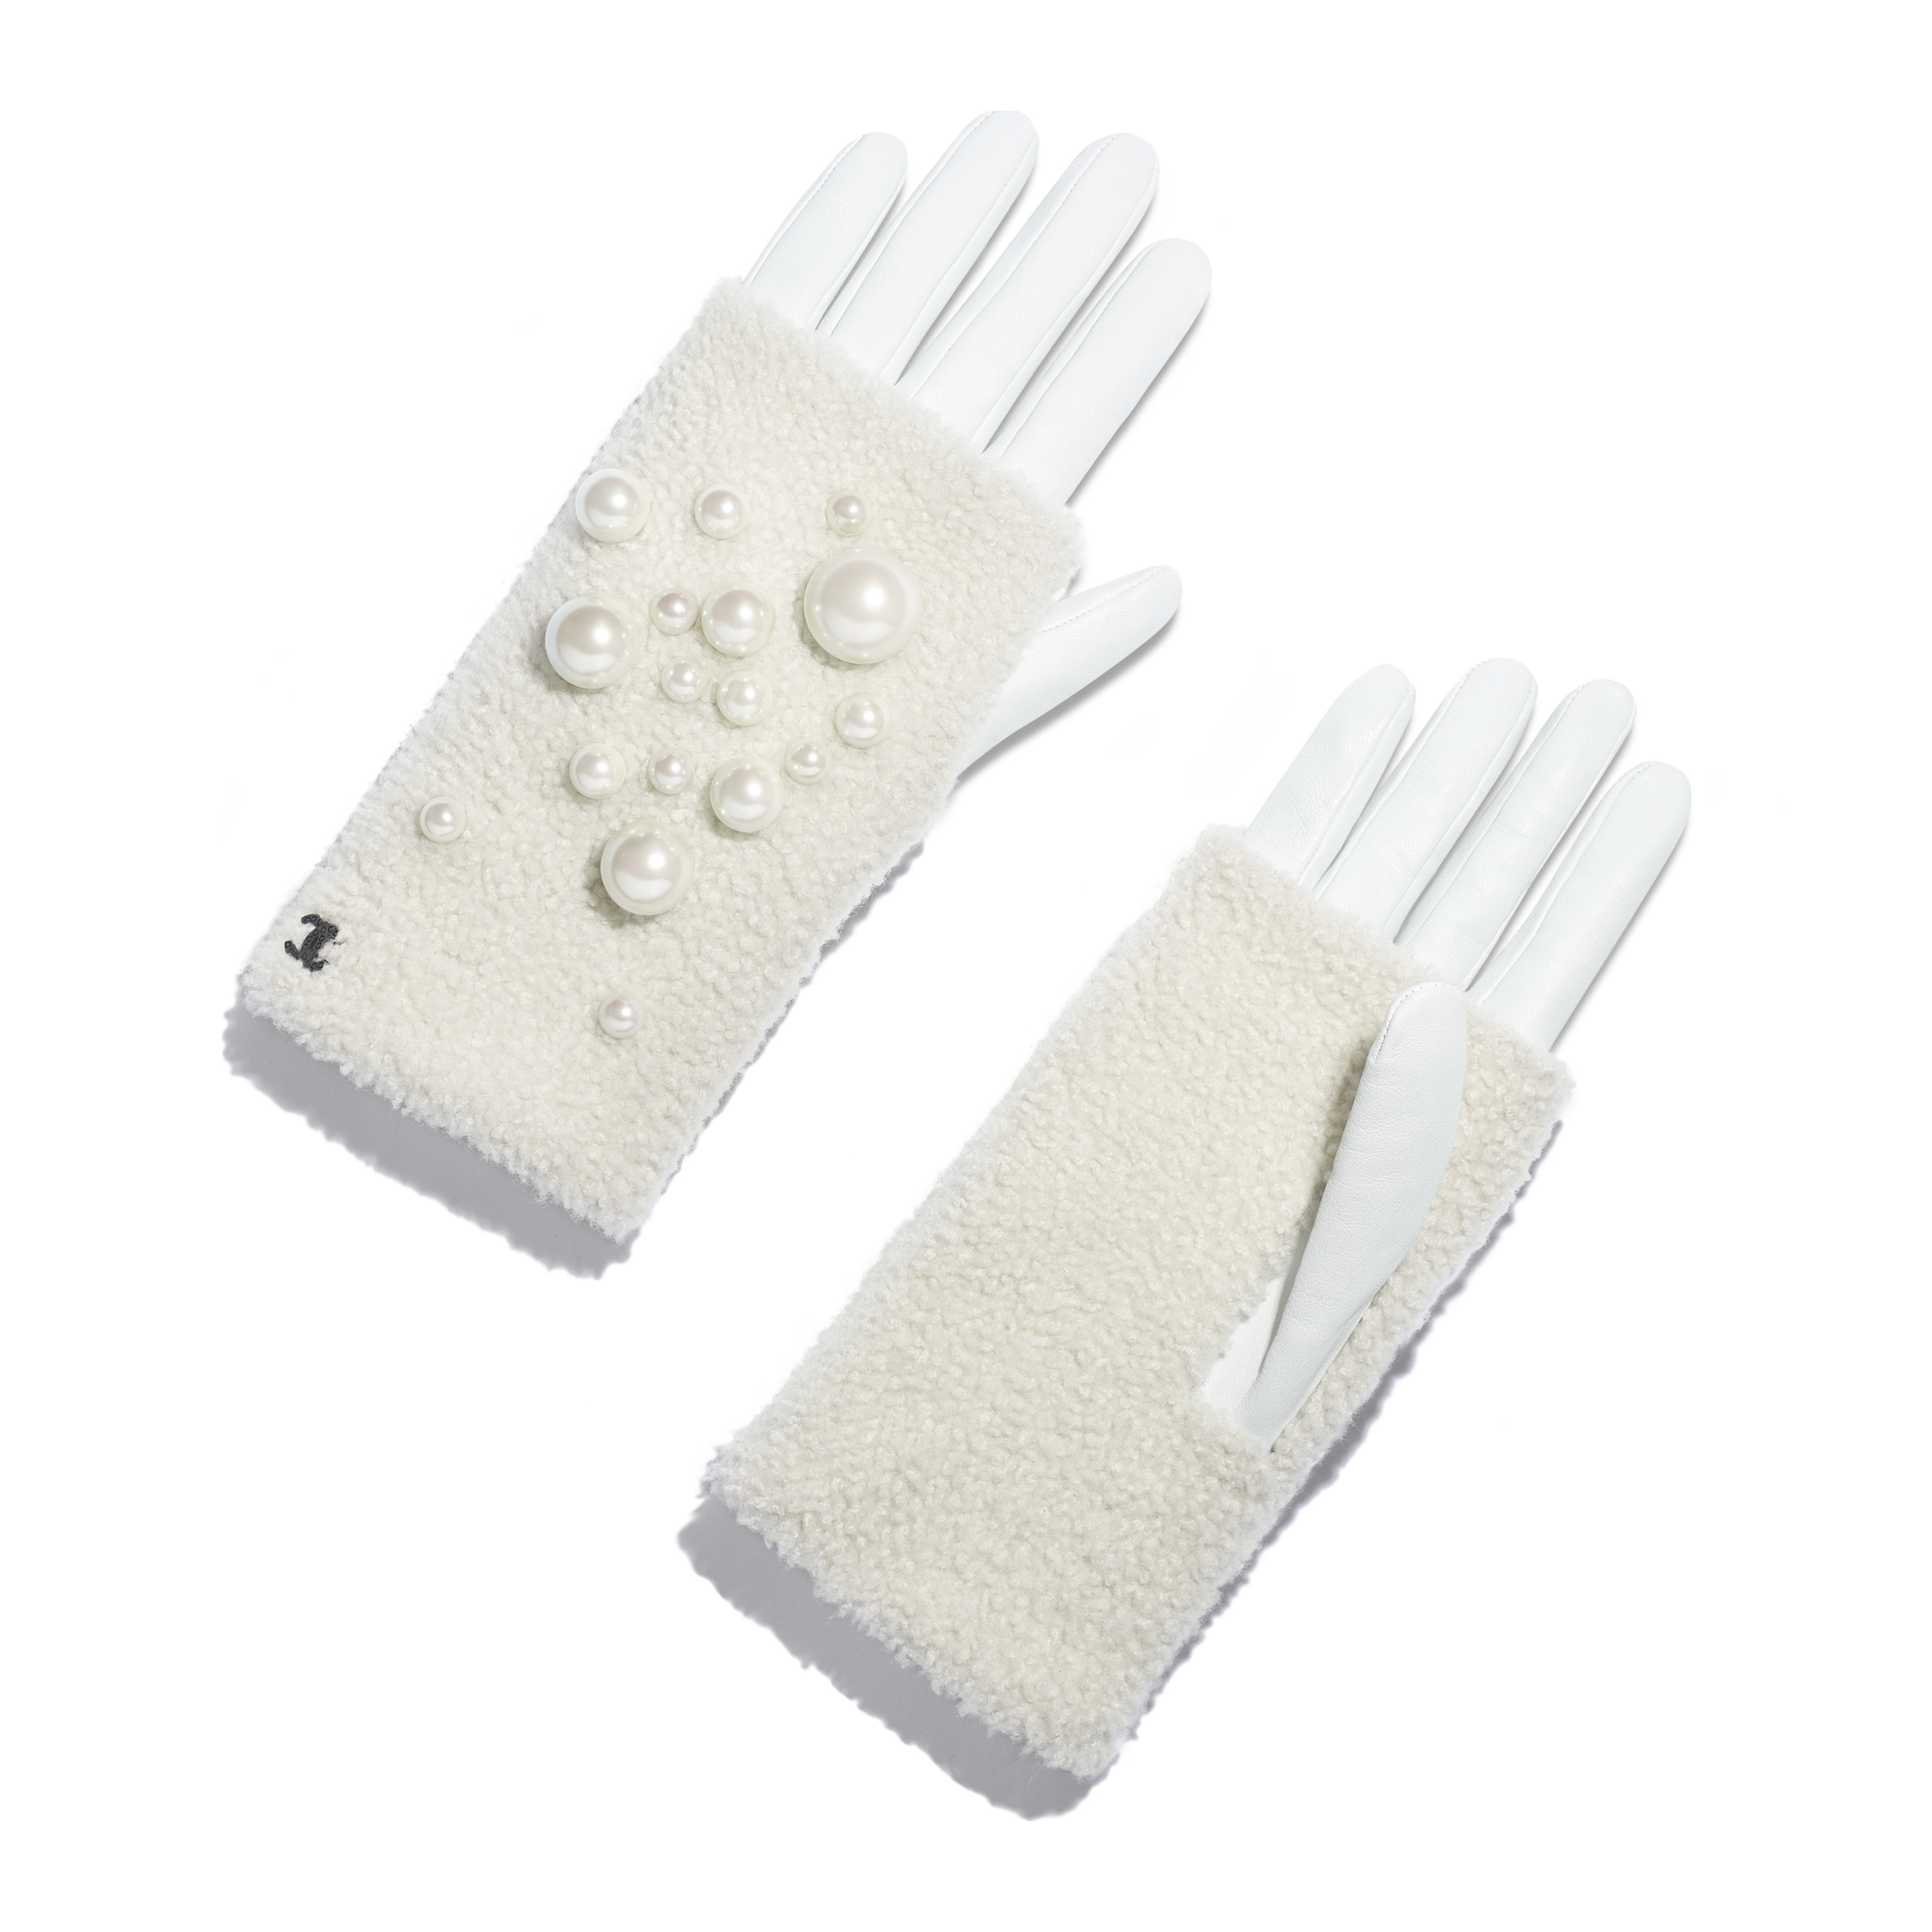 Gloves - White & Ivory - Lambskin, Shearling & Pearls - Default view - see full sized version